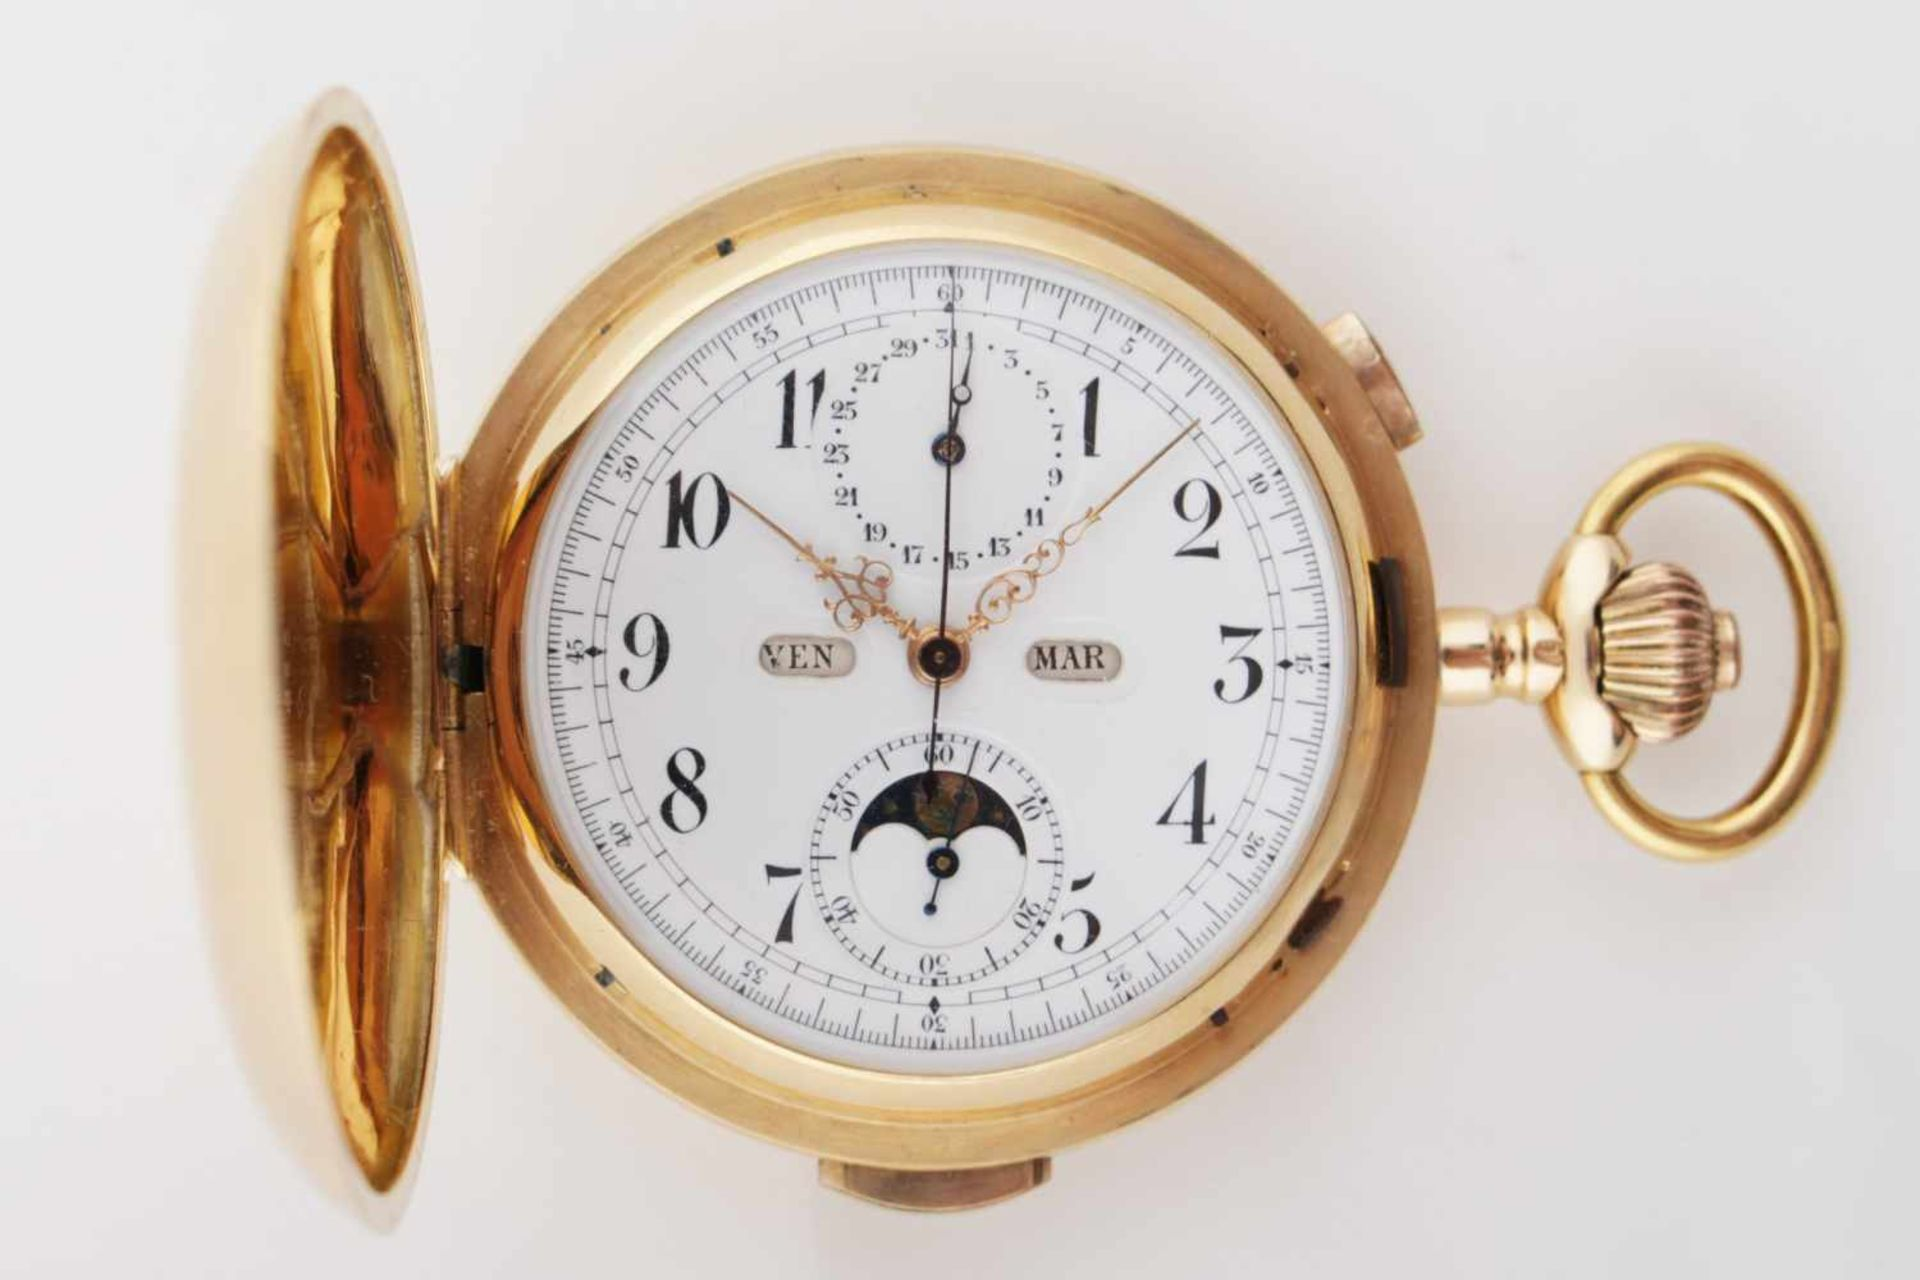 Los 16 - Chronograph with minute beatings, lunar and date indicator Beginning of the 20th century, massive